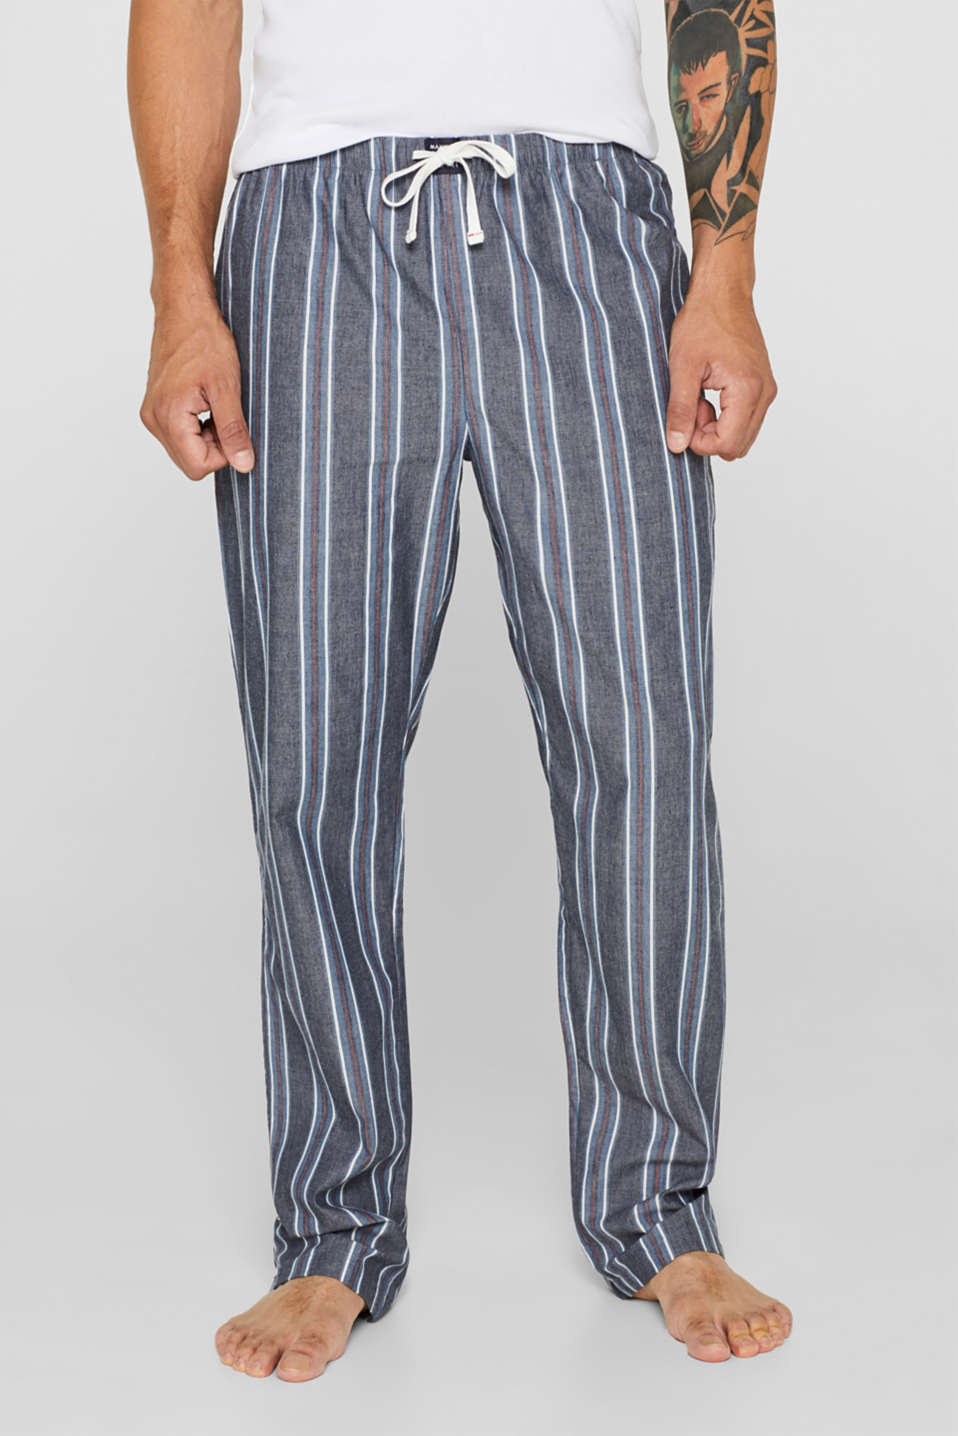 Pyjama bottoms with an elasticated waistband, 100% cotton